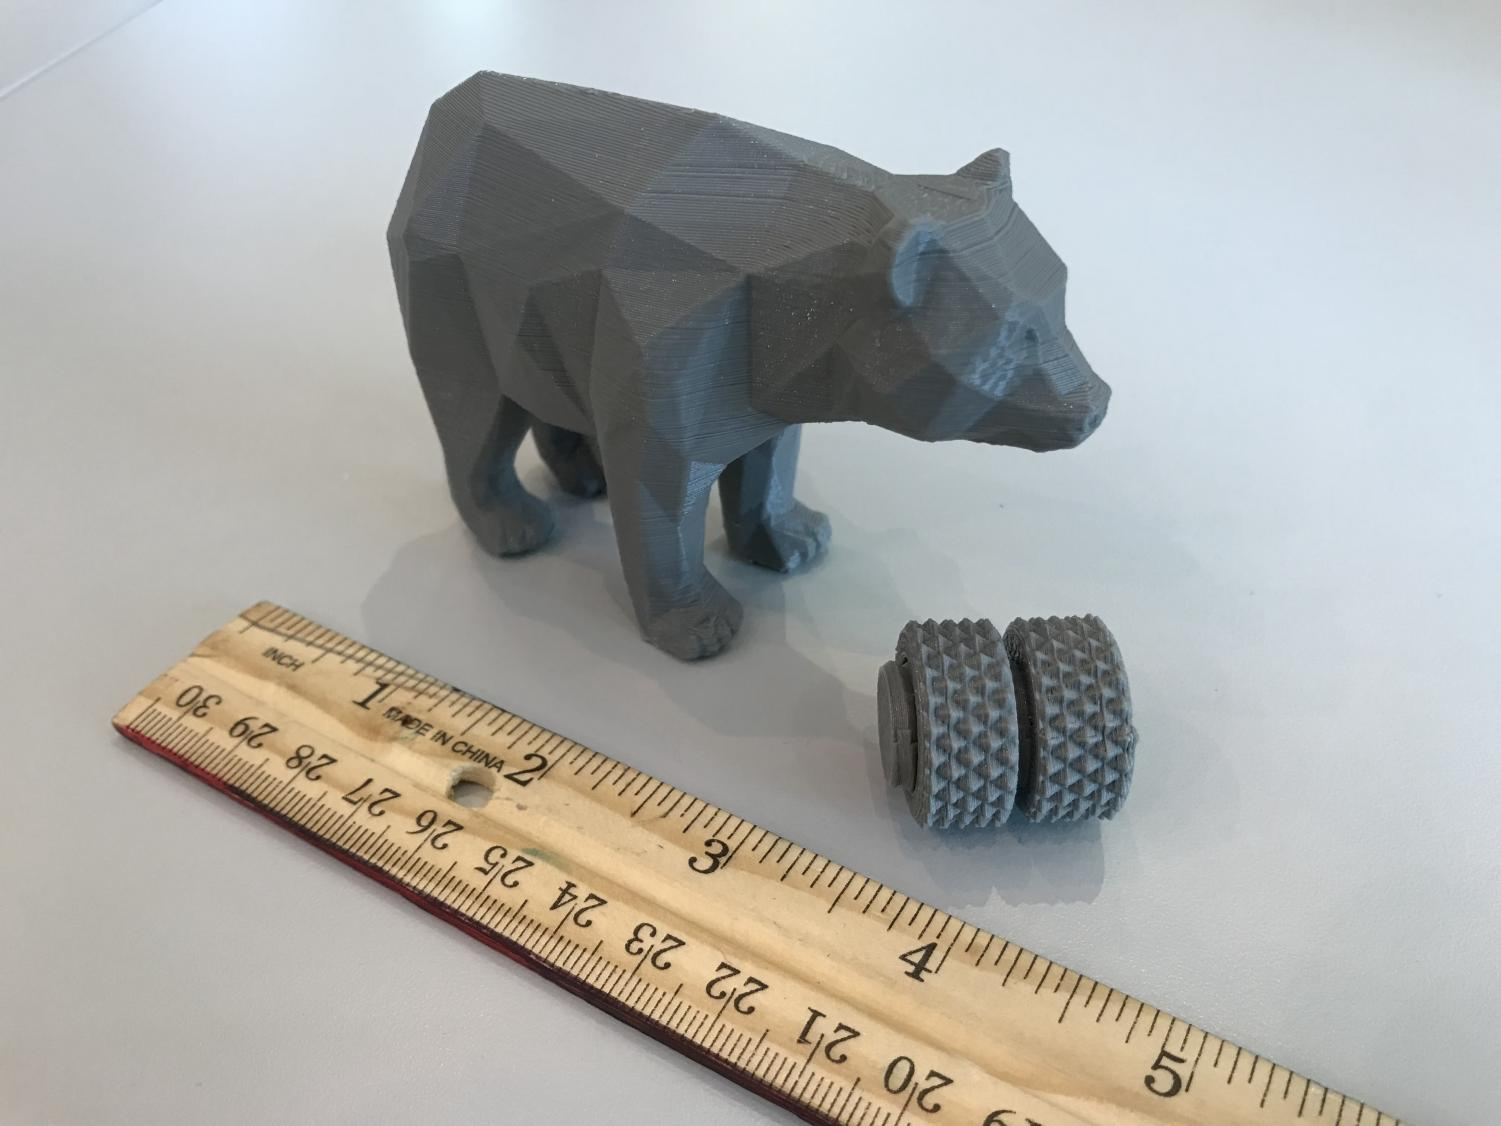 A plastic bear (roughly 2 x 3 x 2 in) made by the 3D printer.